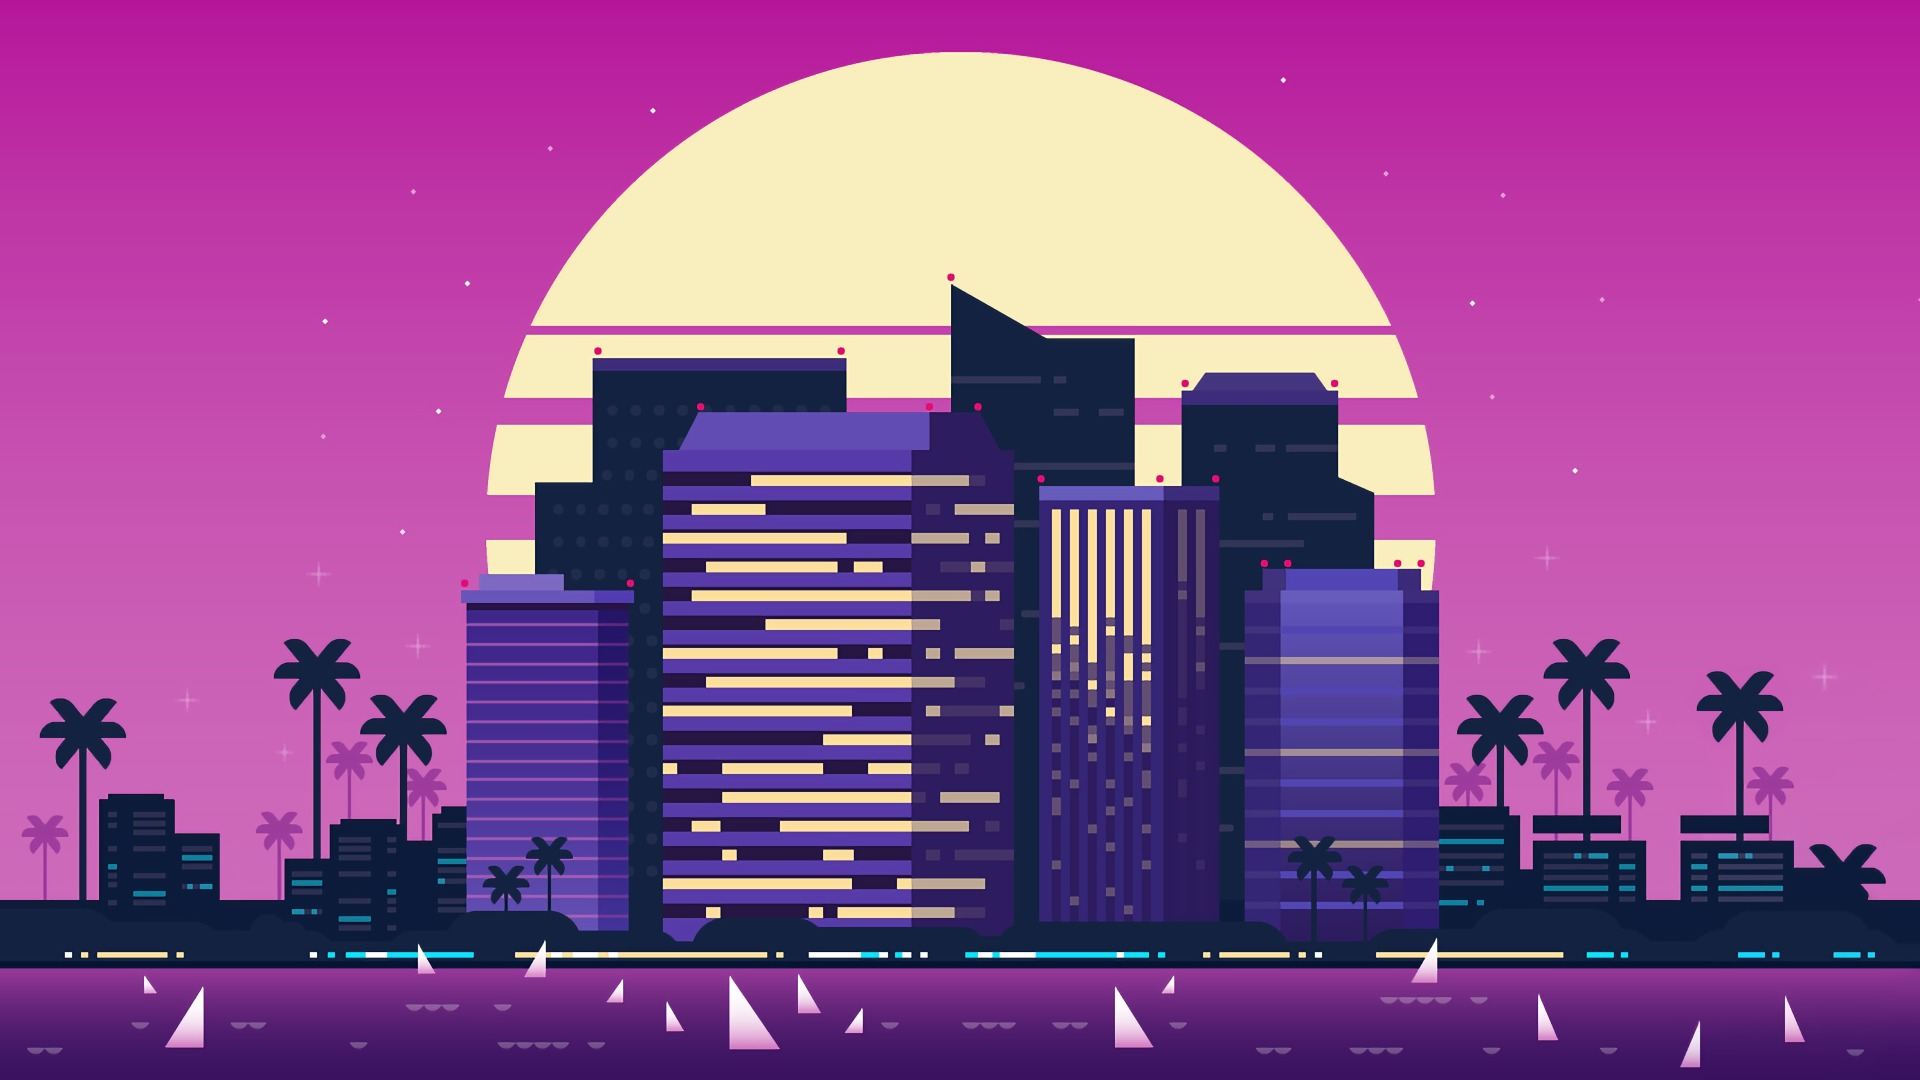 1920x1080 Retro Style City Purple Background 1080p Laptop Full Hd Wallpaper Hd Artist 4k Wallpapers Images Photos And Background